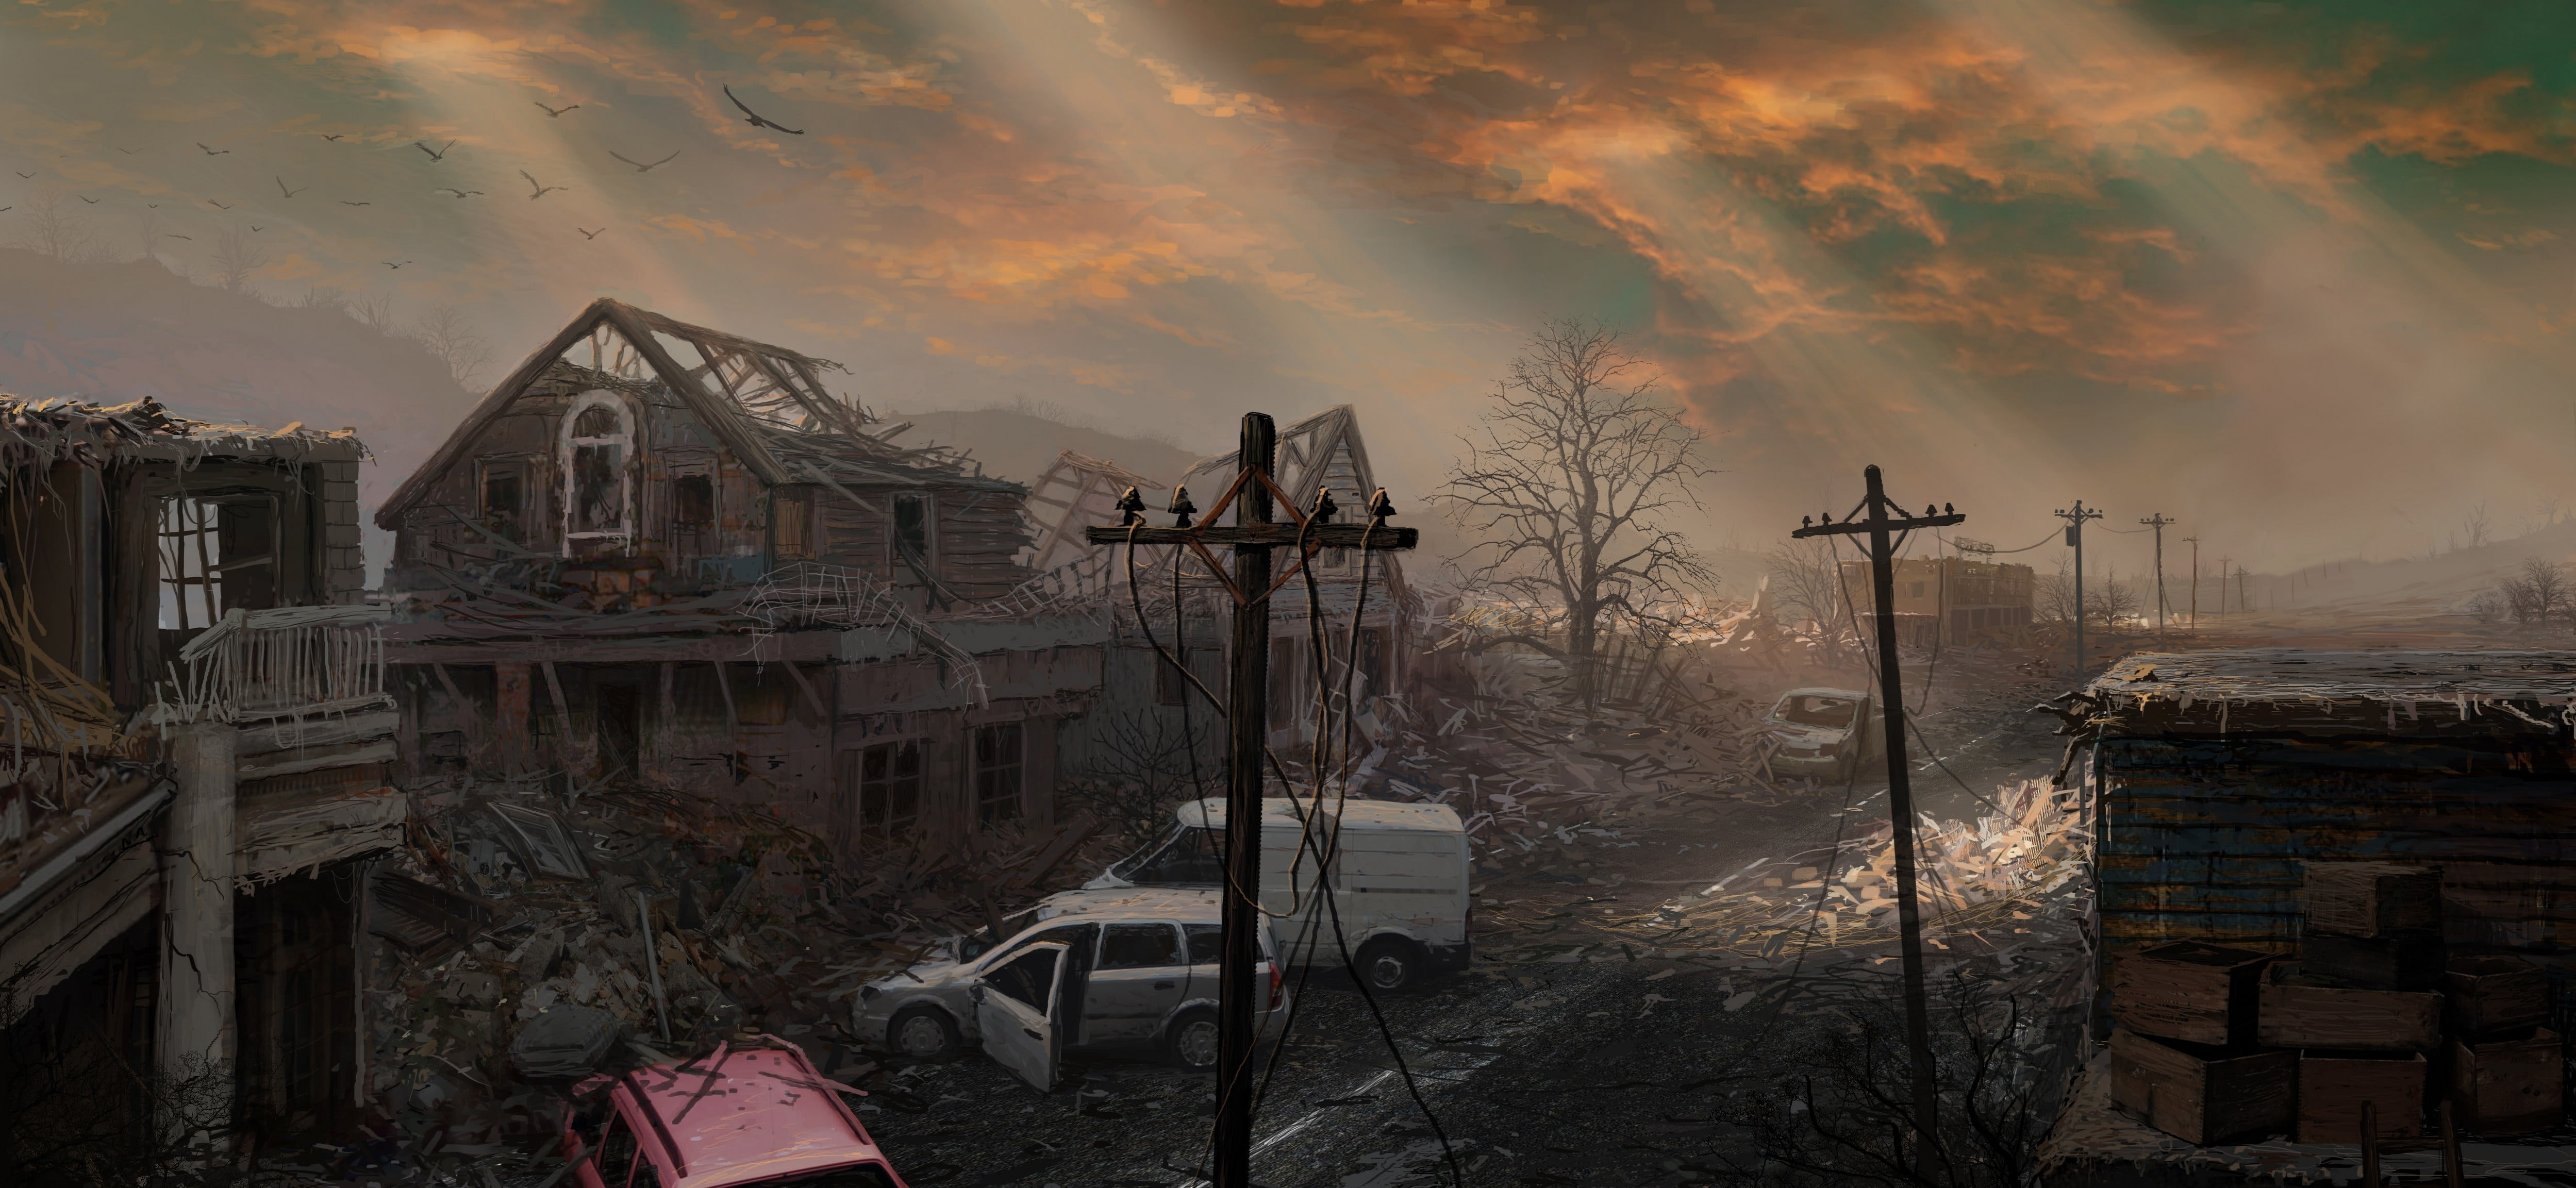 Ghost town wallpaper artwork apocalyptic HD wallpaper 4997x2305